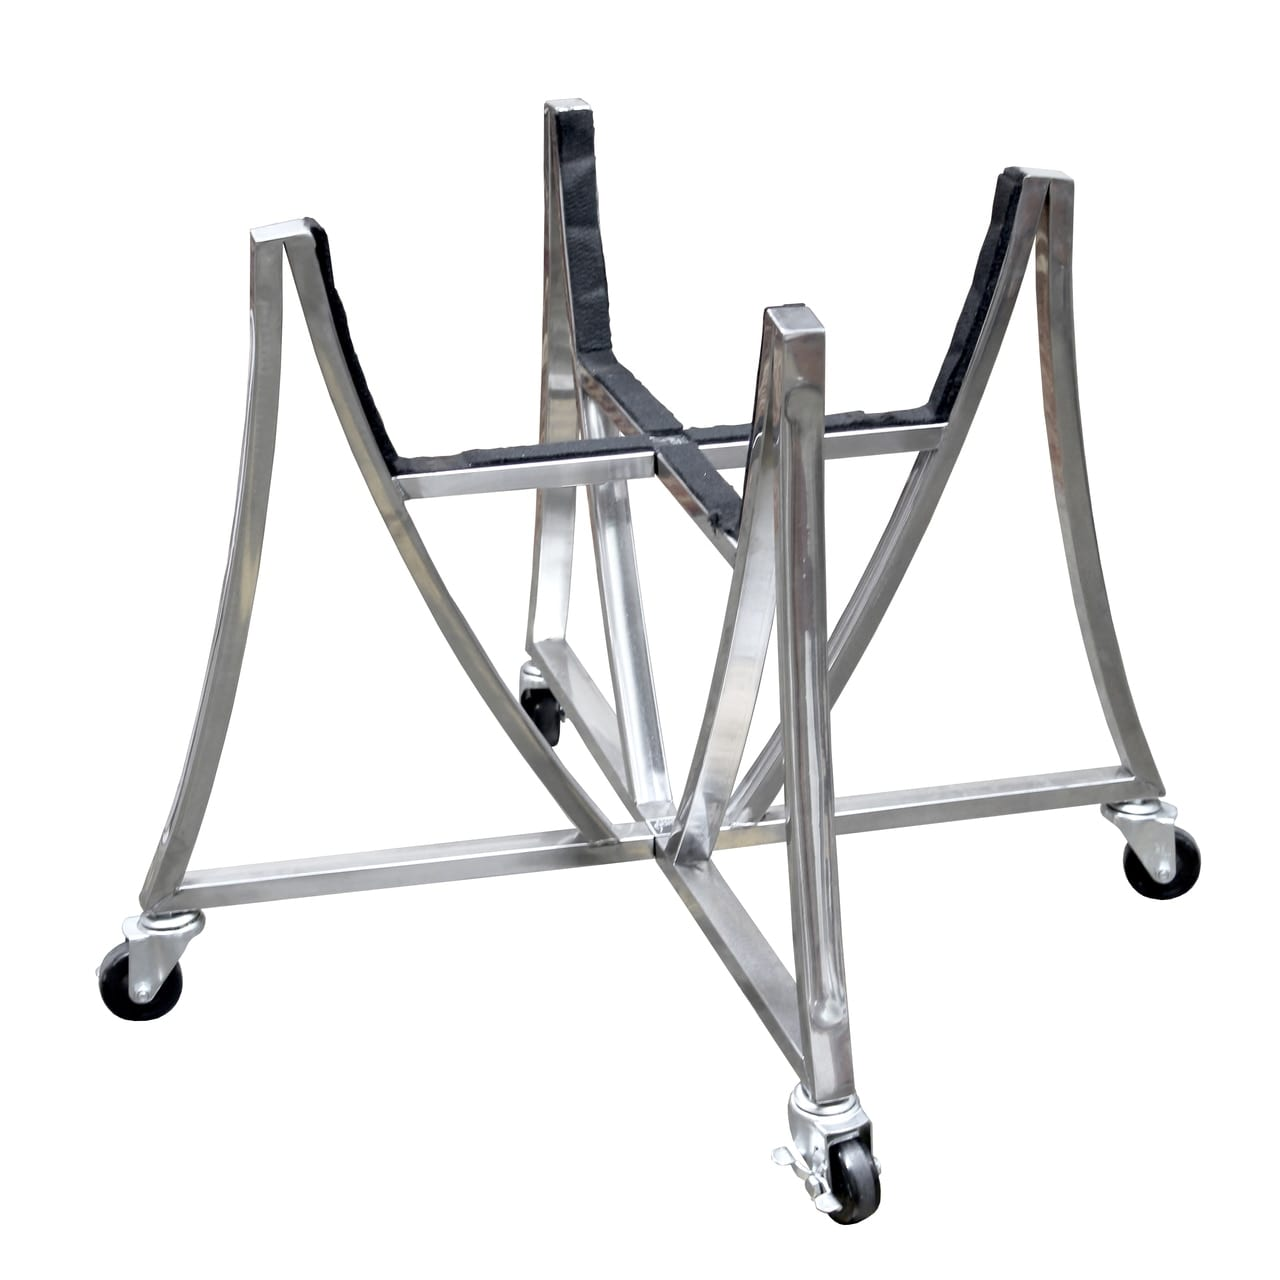 Large Grill Cart Kit - Silver